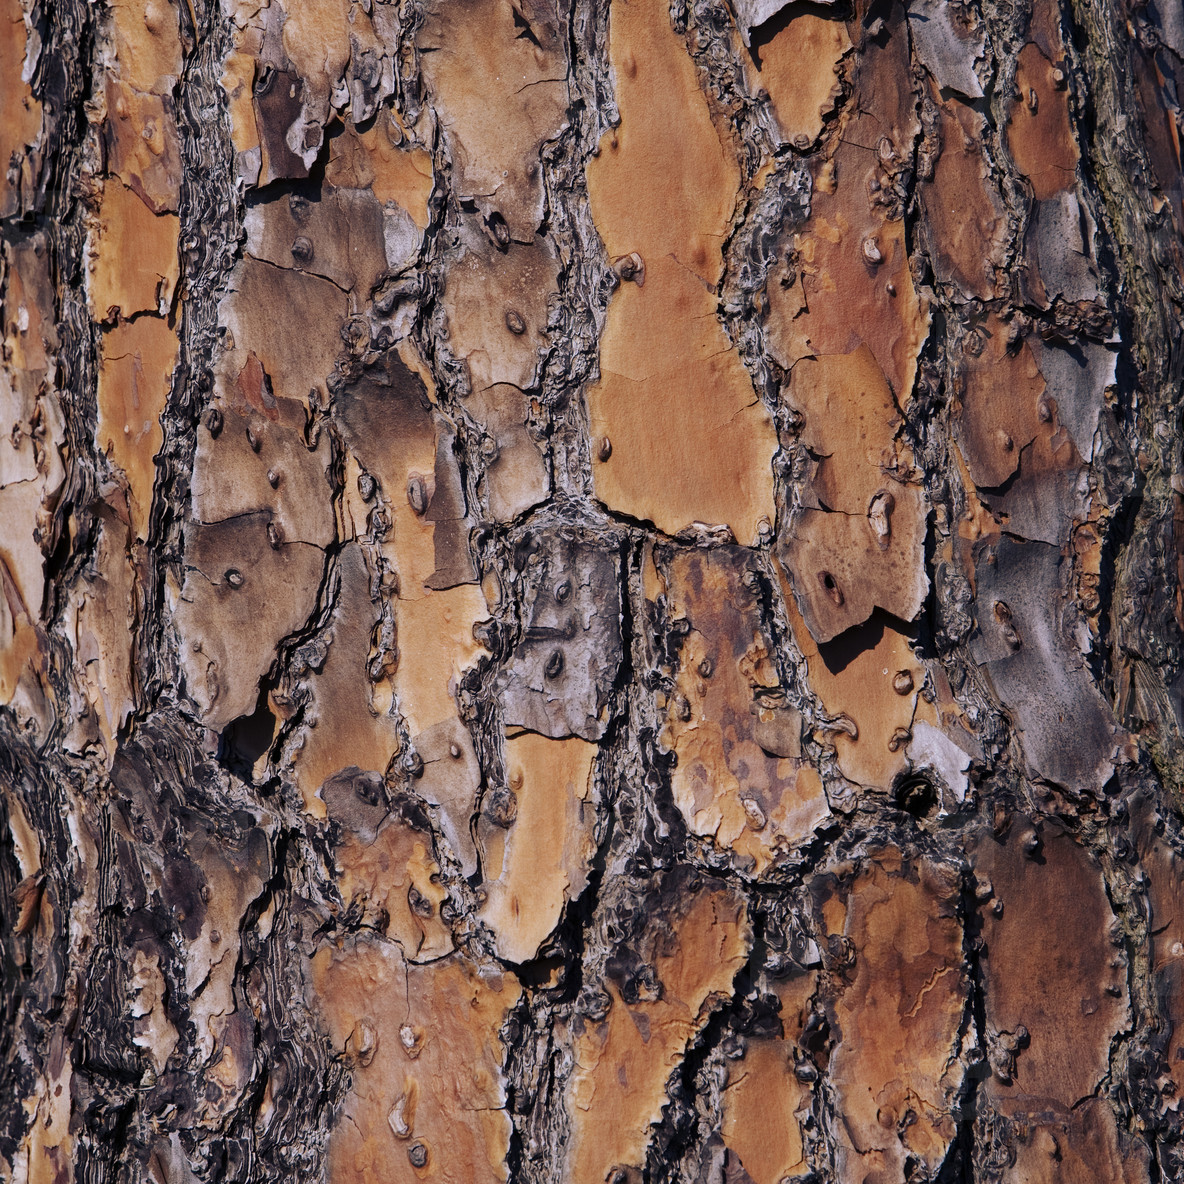 Tree bark close up